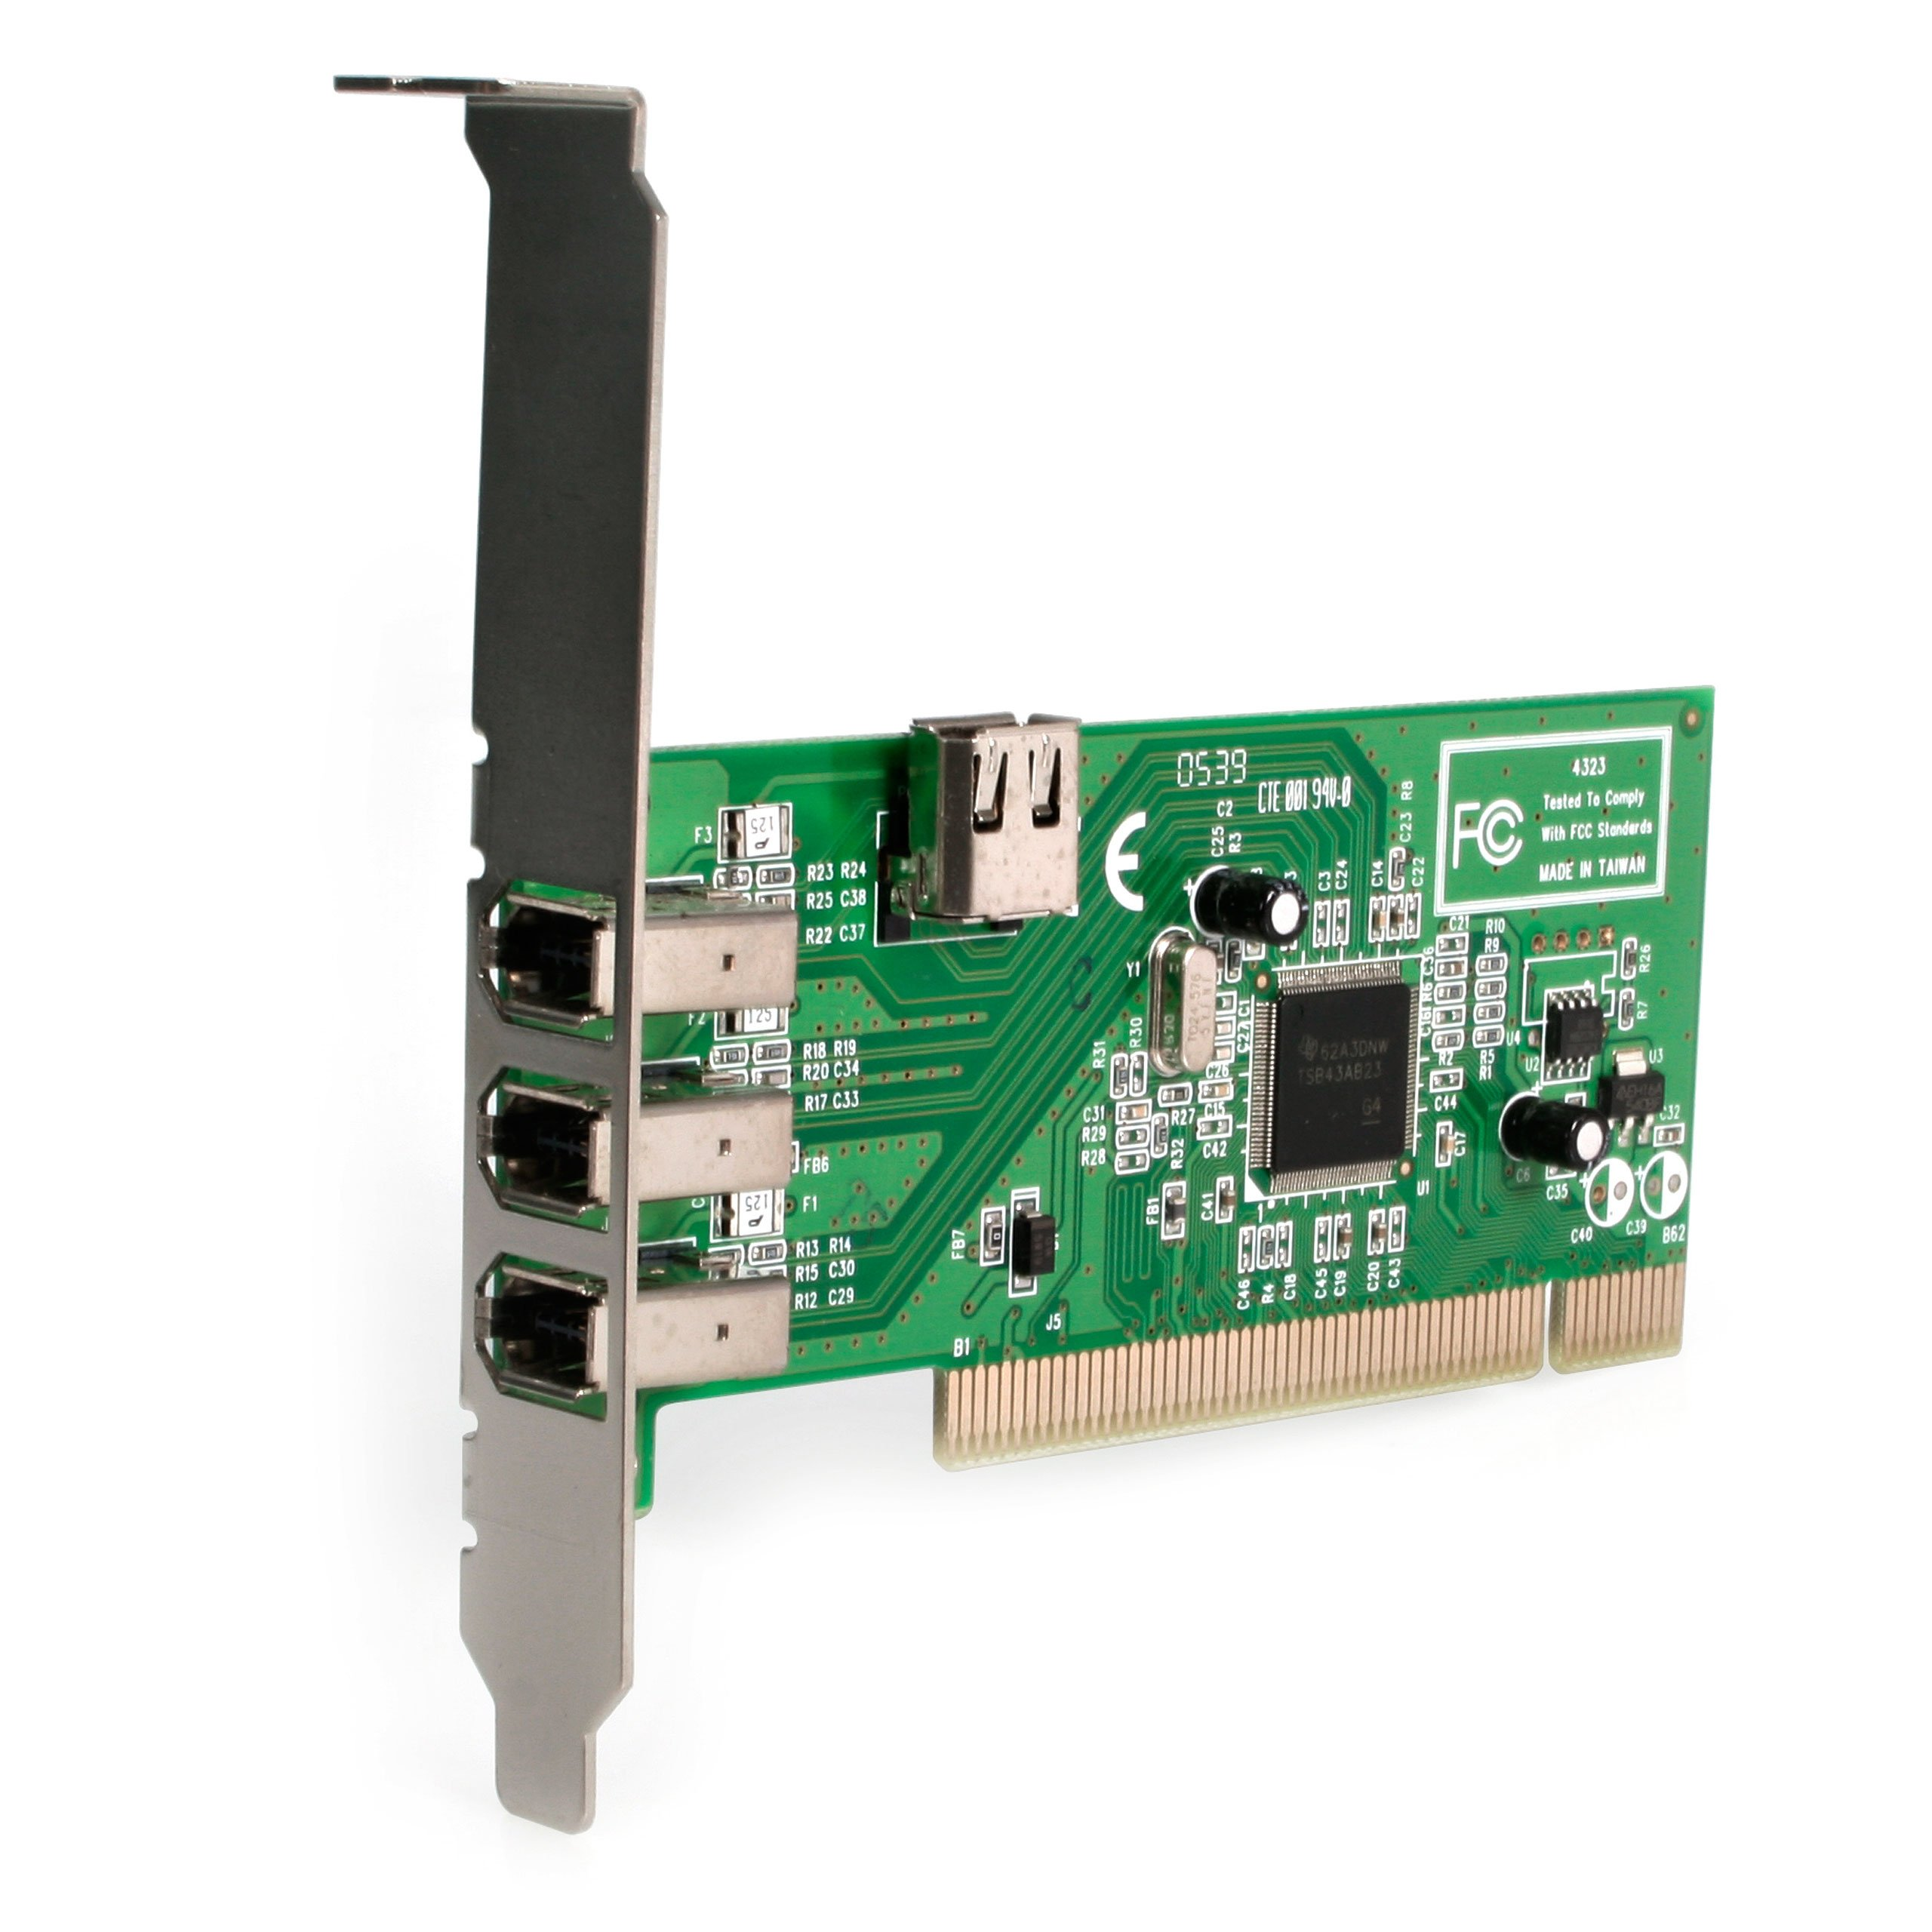 4 port PCI 1394a FireWire Adapter Card - 3 External 1 Internal by StarTech (Image #2)